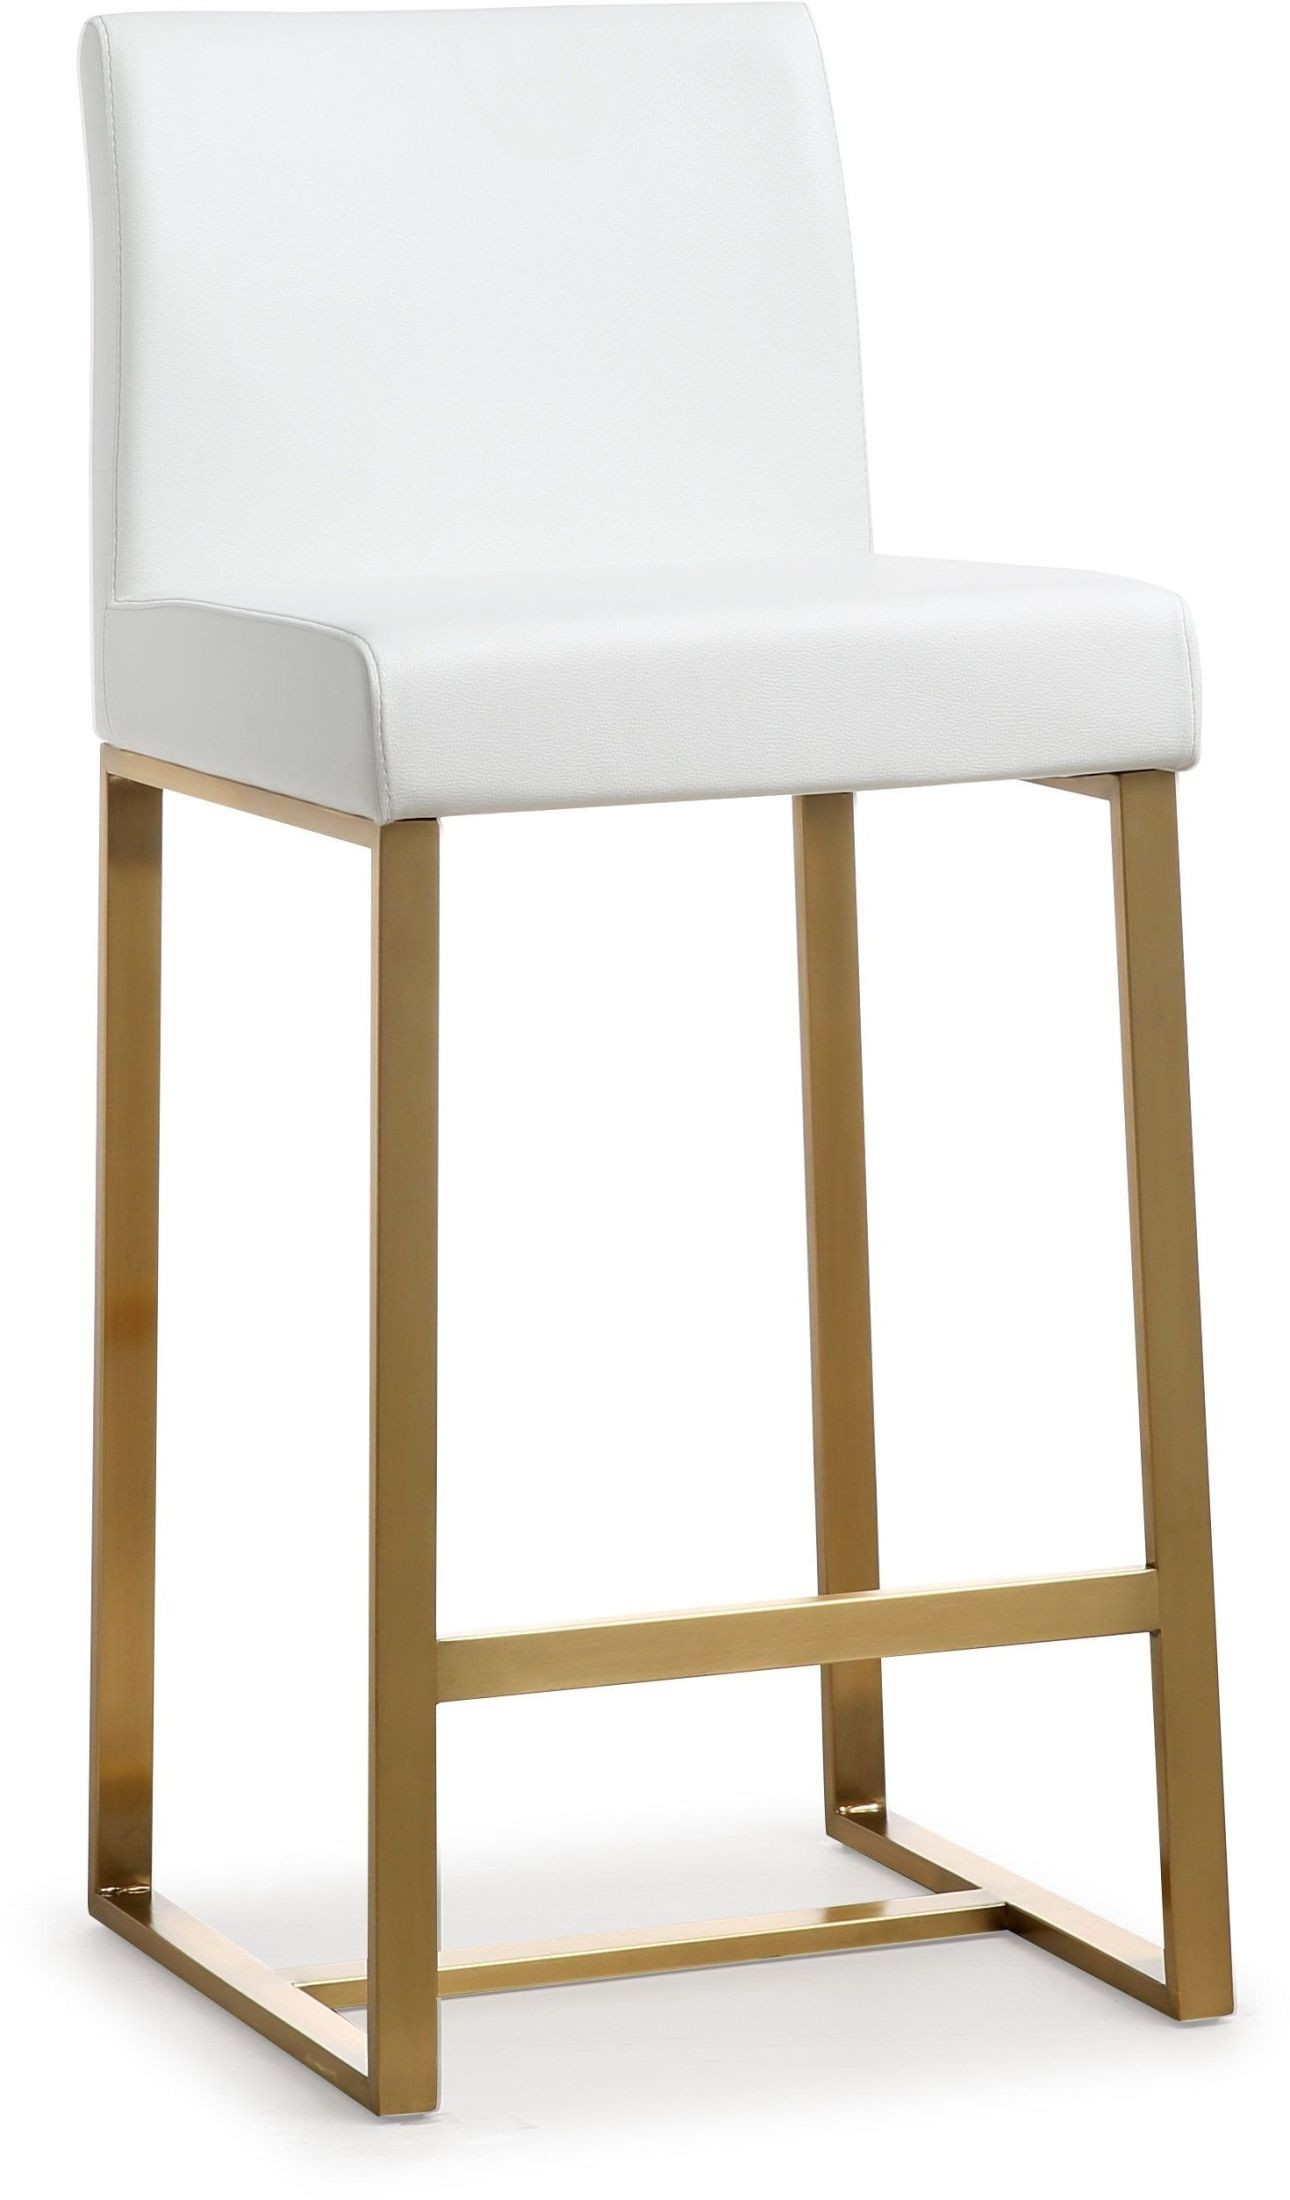 Denmark White Gold Steel Counter Stool Set Of 2 From Tov